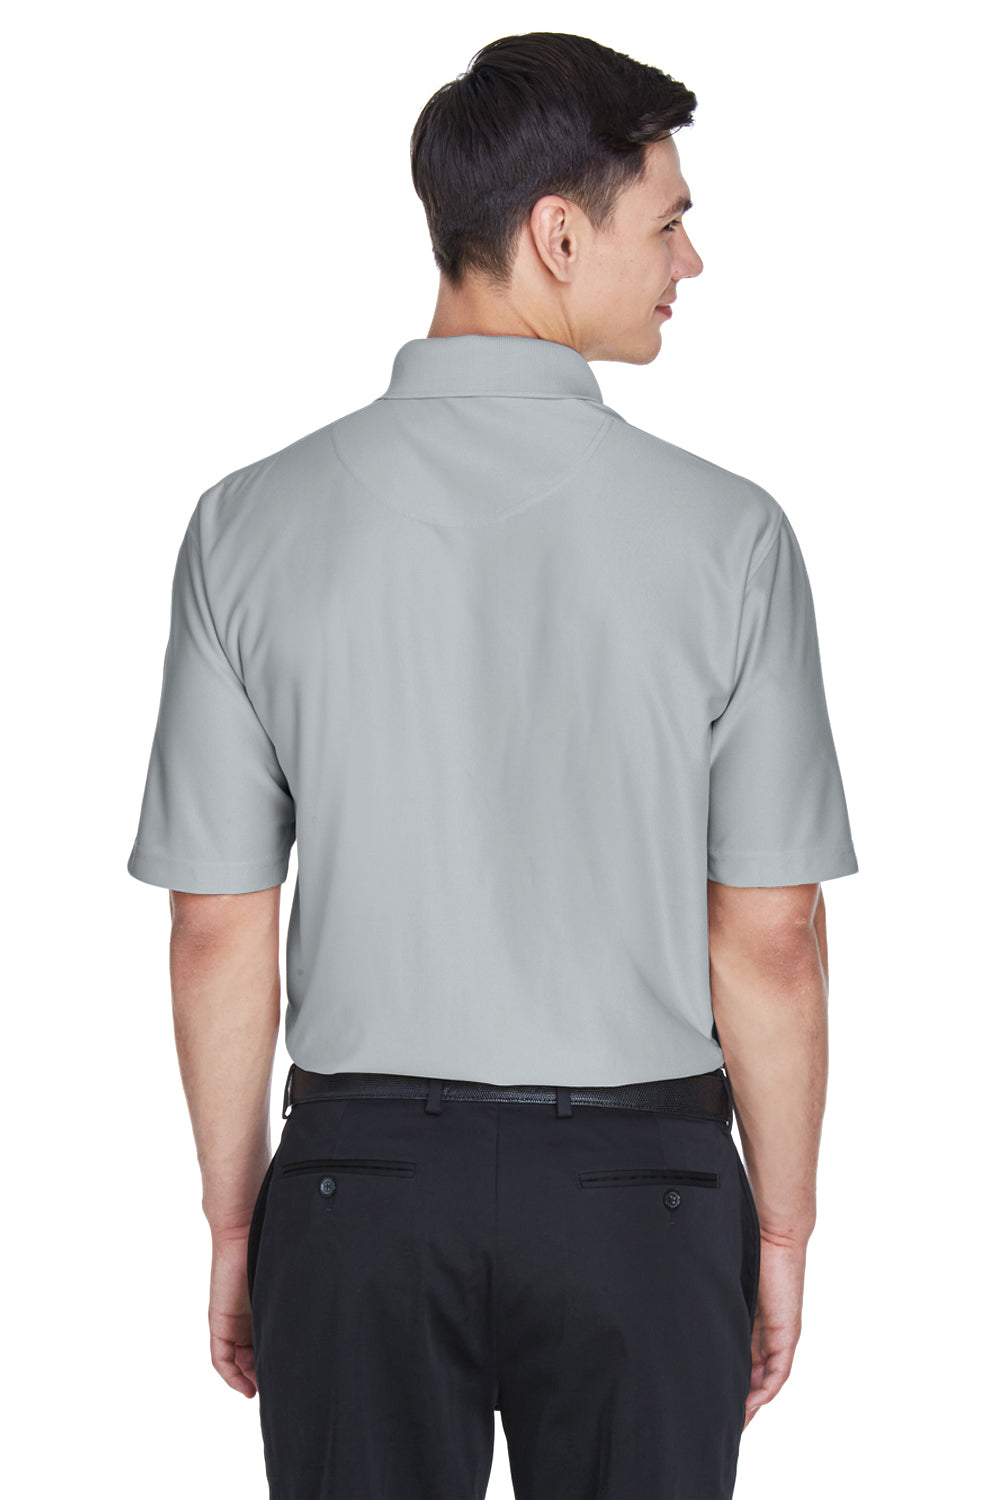 UltraClub 8415 Mens Cool & Dry Elite Performance Moisture Wicking Short Sleeve Polo Shirt Grey Back